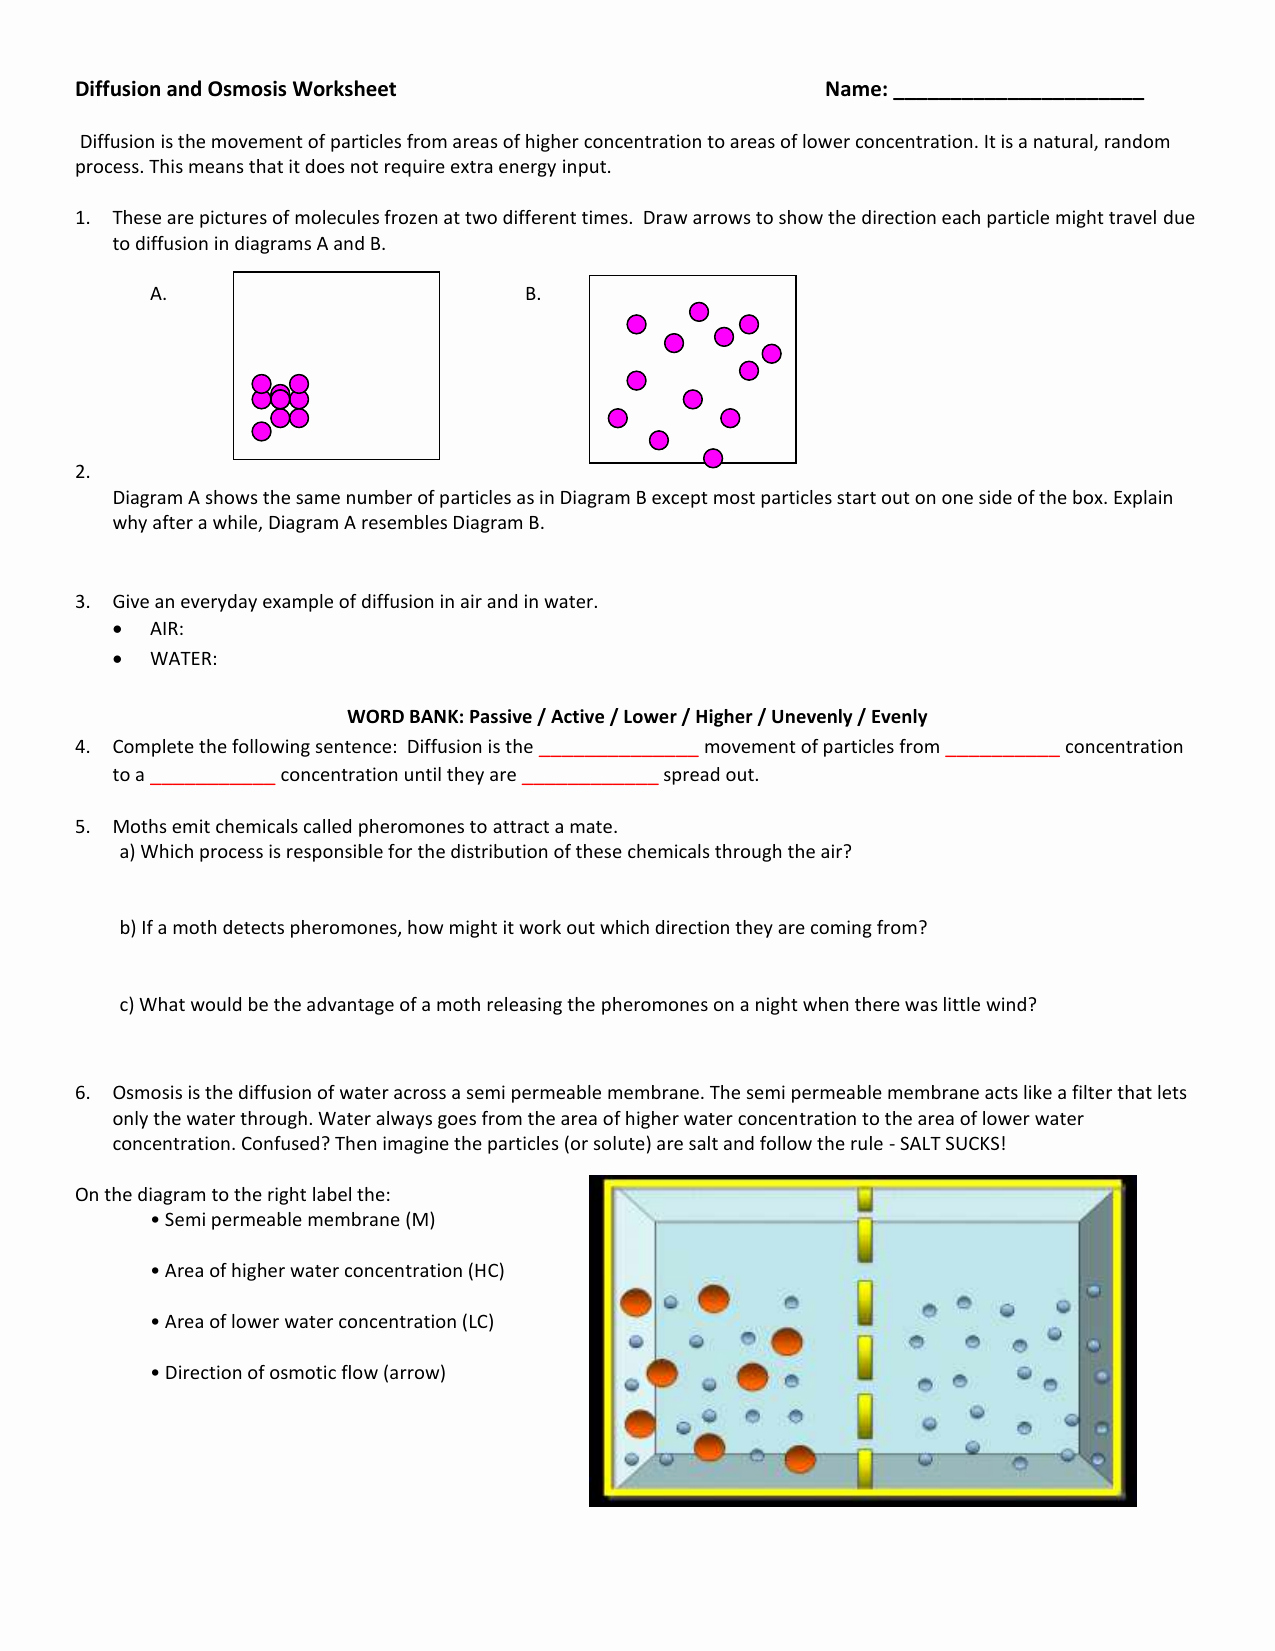 Diffusion and Osmosis Worksheet Answers Lovely Diffusion and Osmosis Worksheet